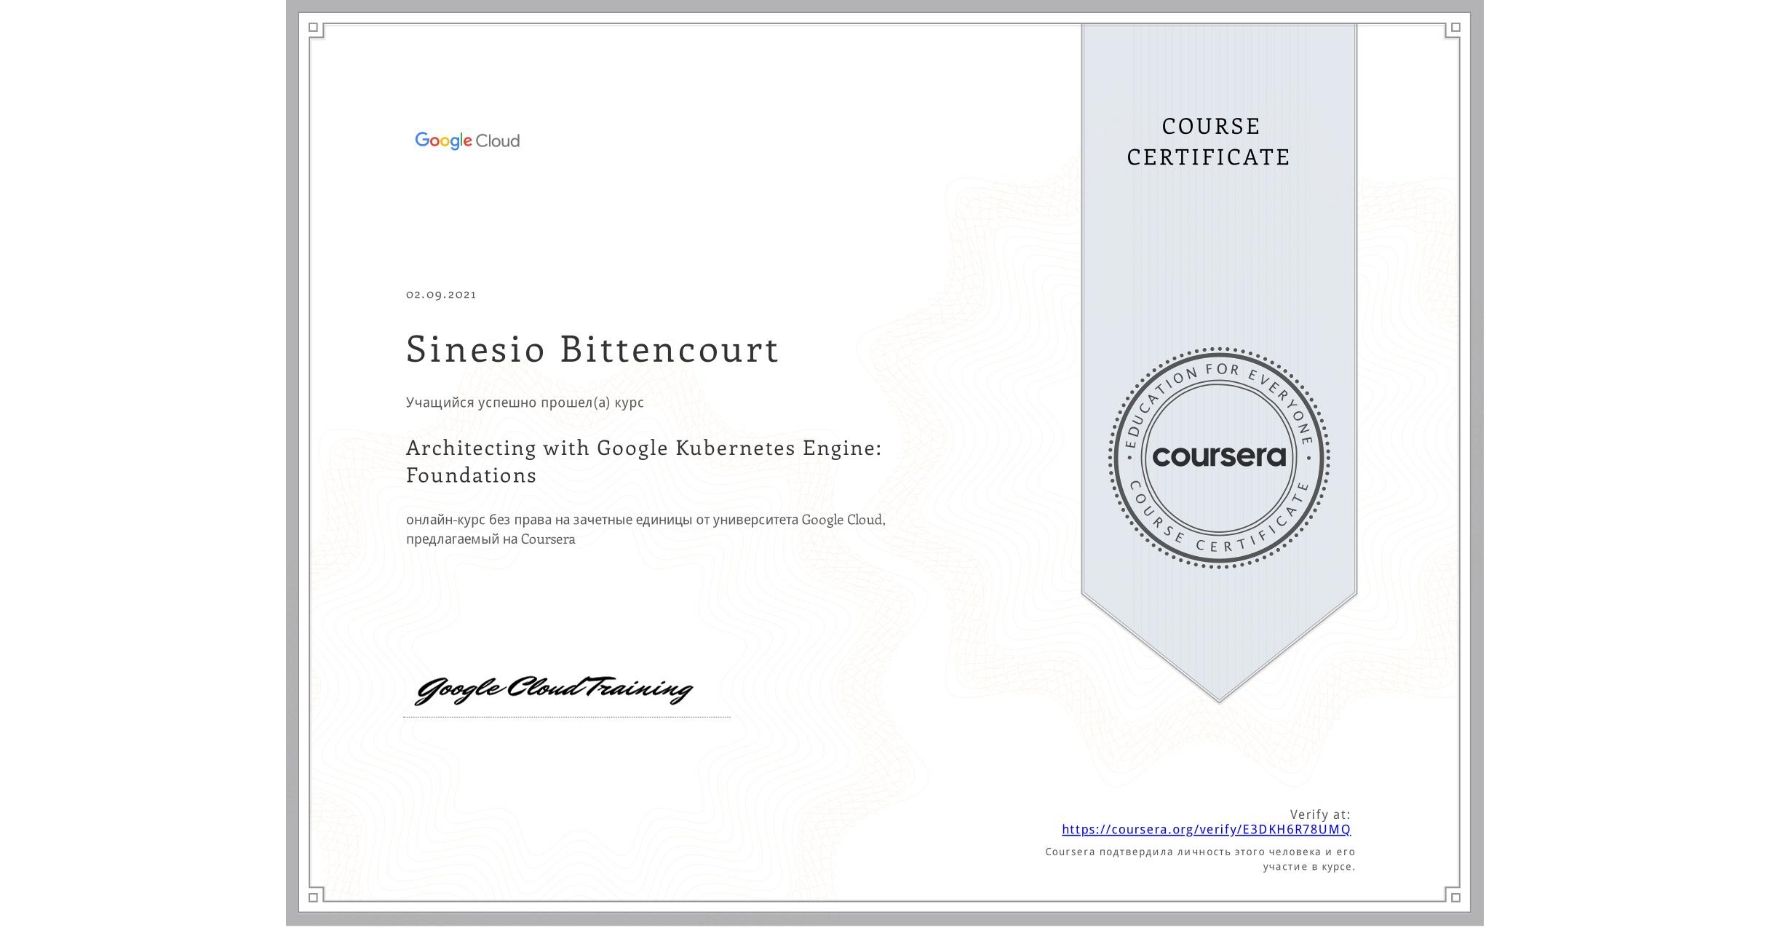 View certificate for Sinesio Bittencourt, Architecting with Google Kubernetes Engine: Foundations, an online non-credit course authorized by Google Cloud and offered through Coursera